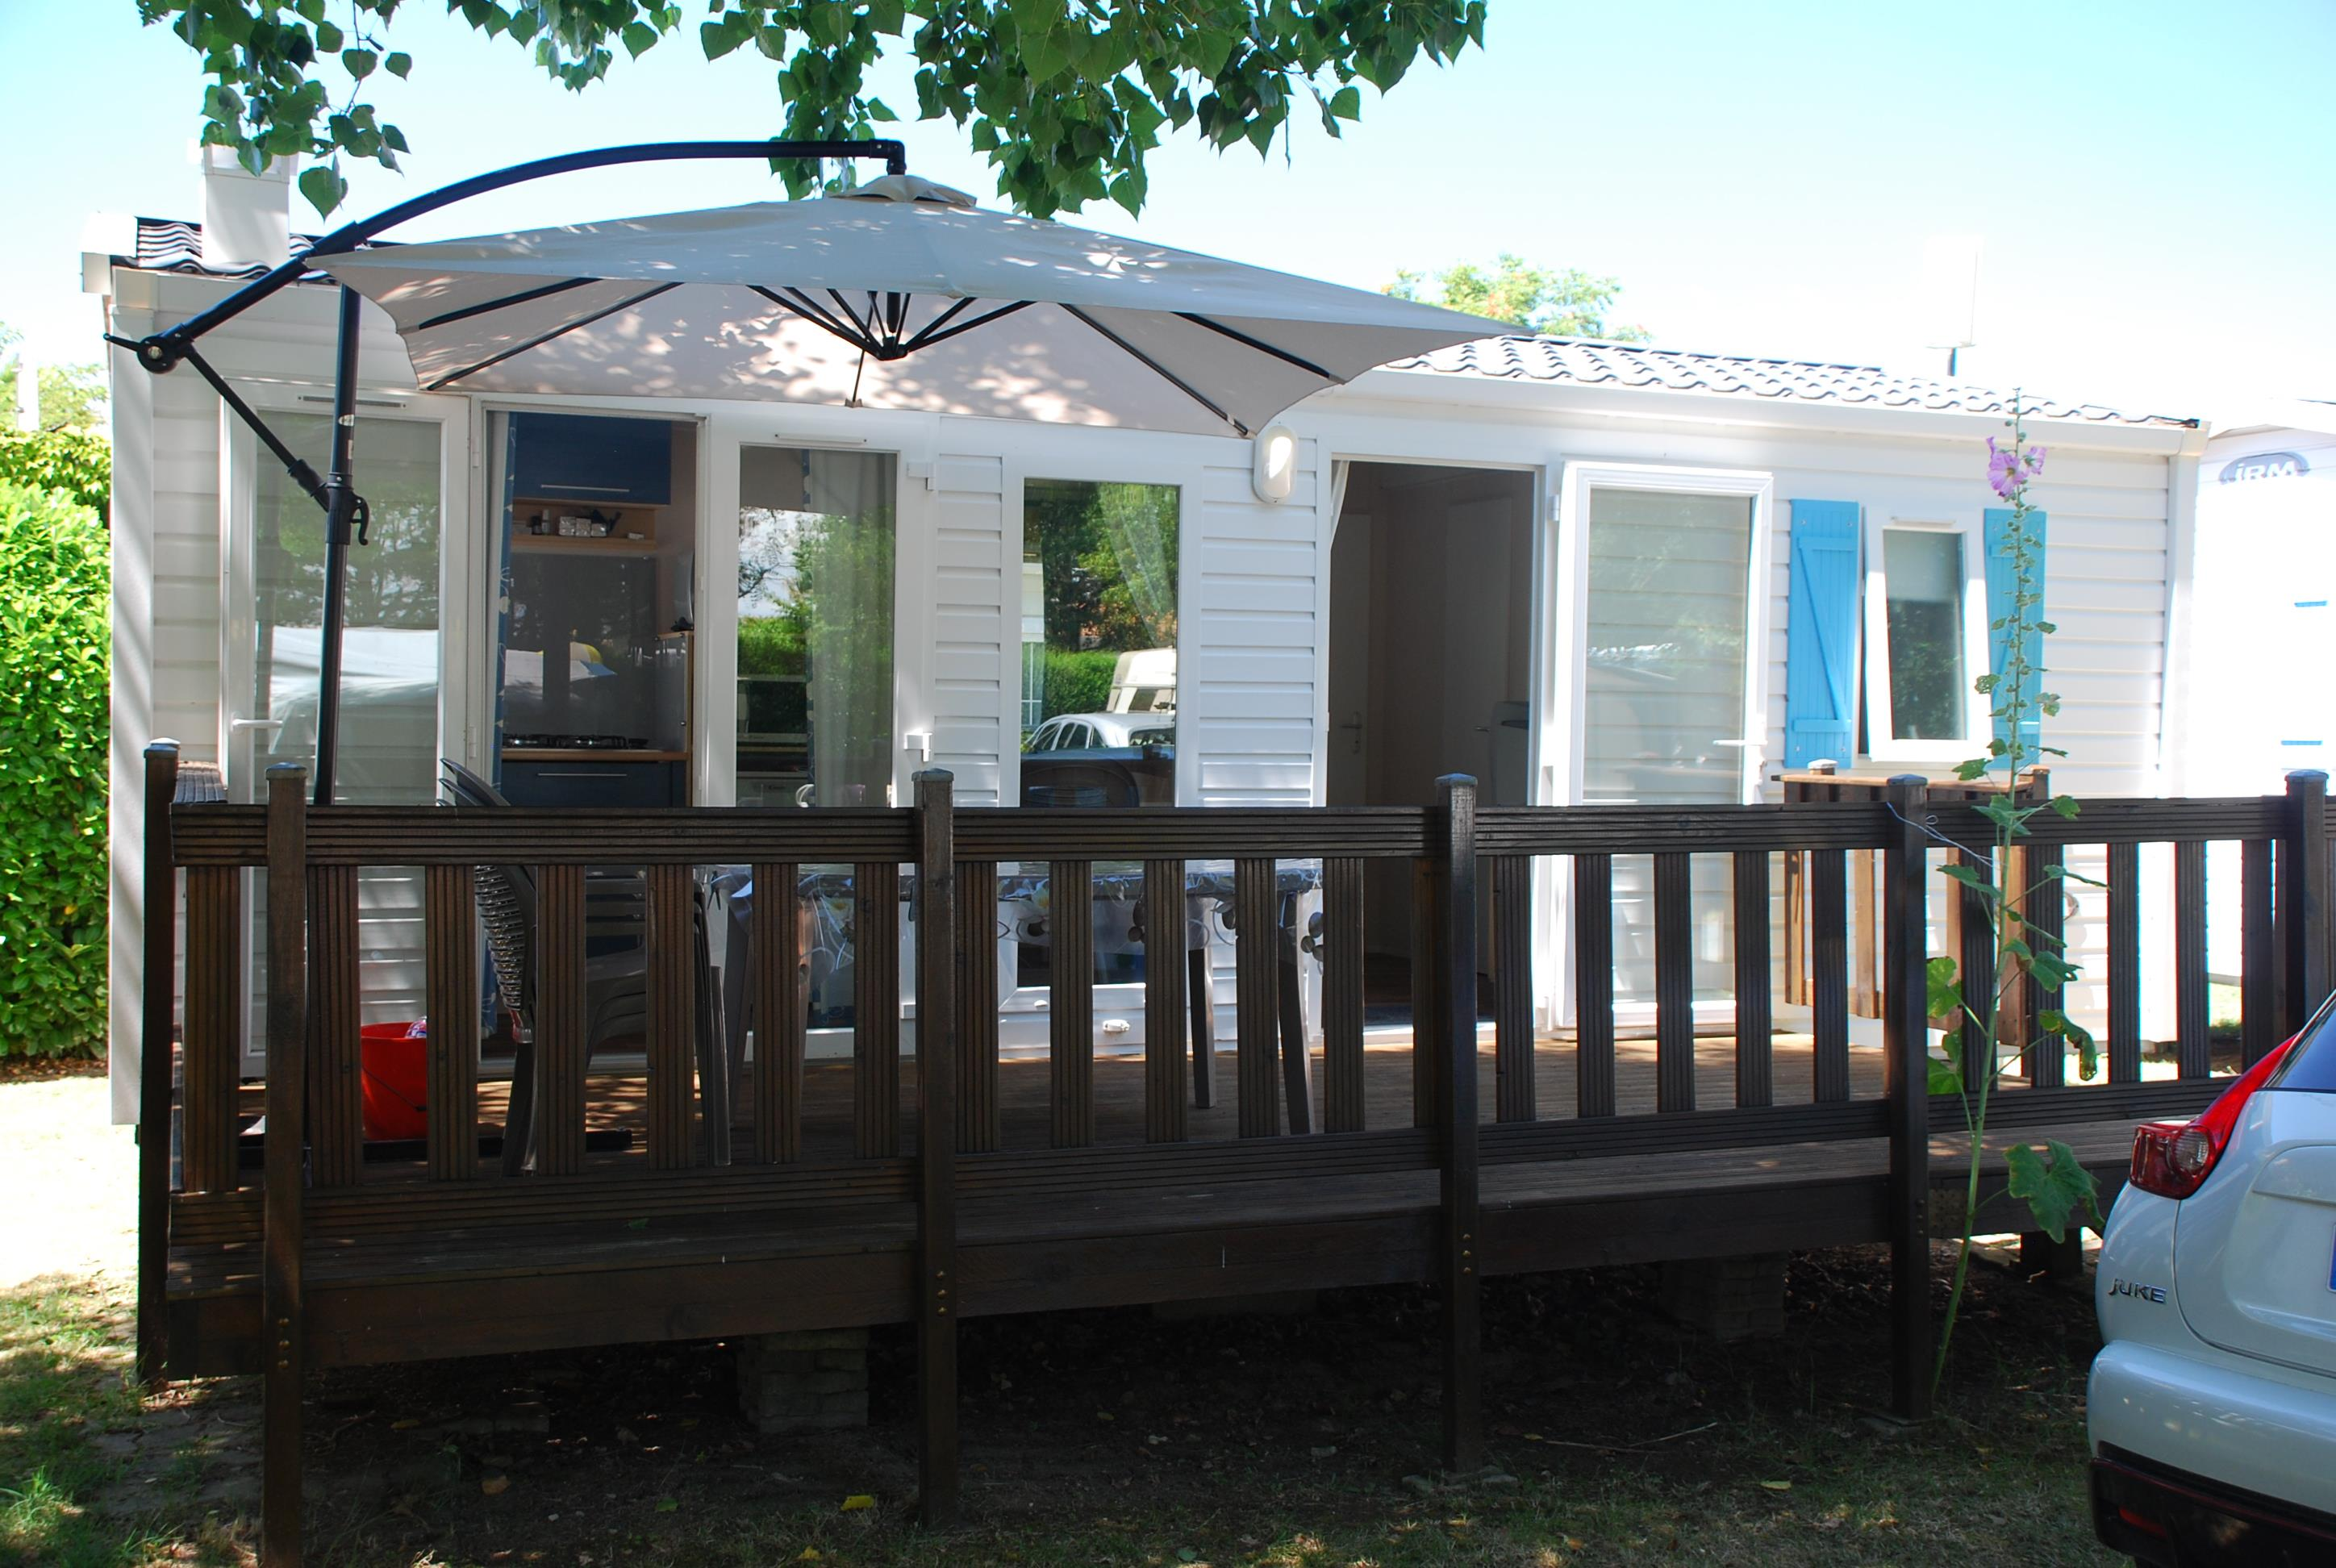 Huuraccommodaties - Stacaravan Super Mercure Riviera - Camping La Borderie